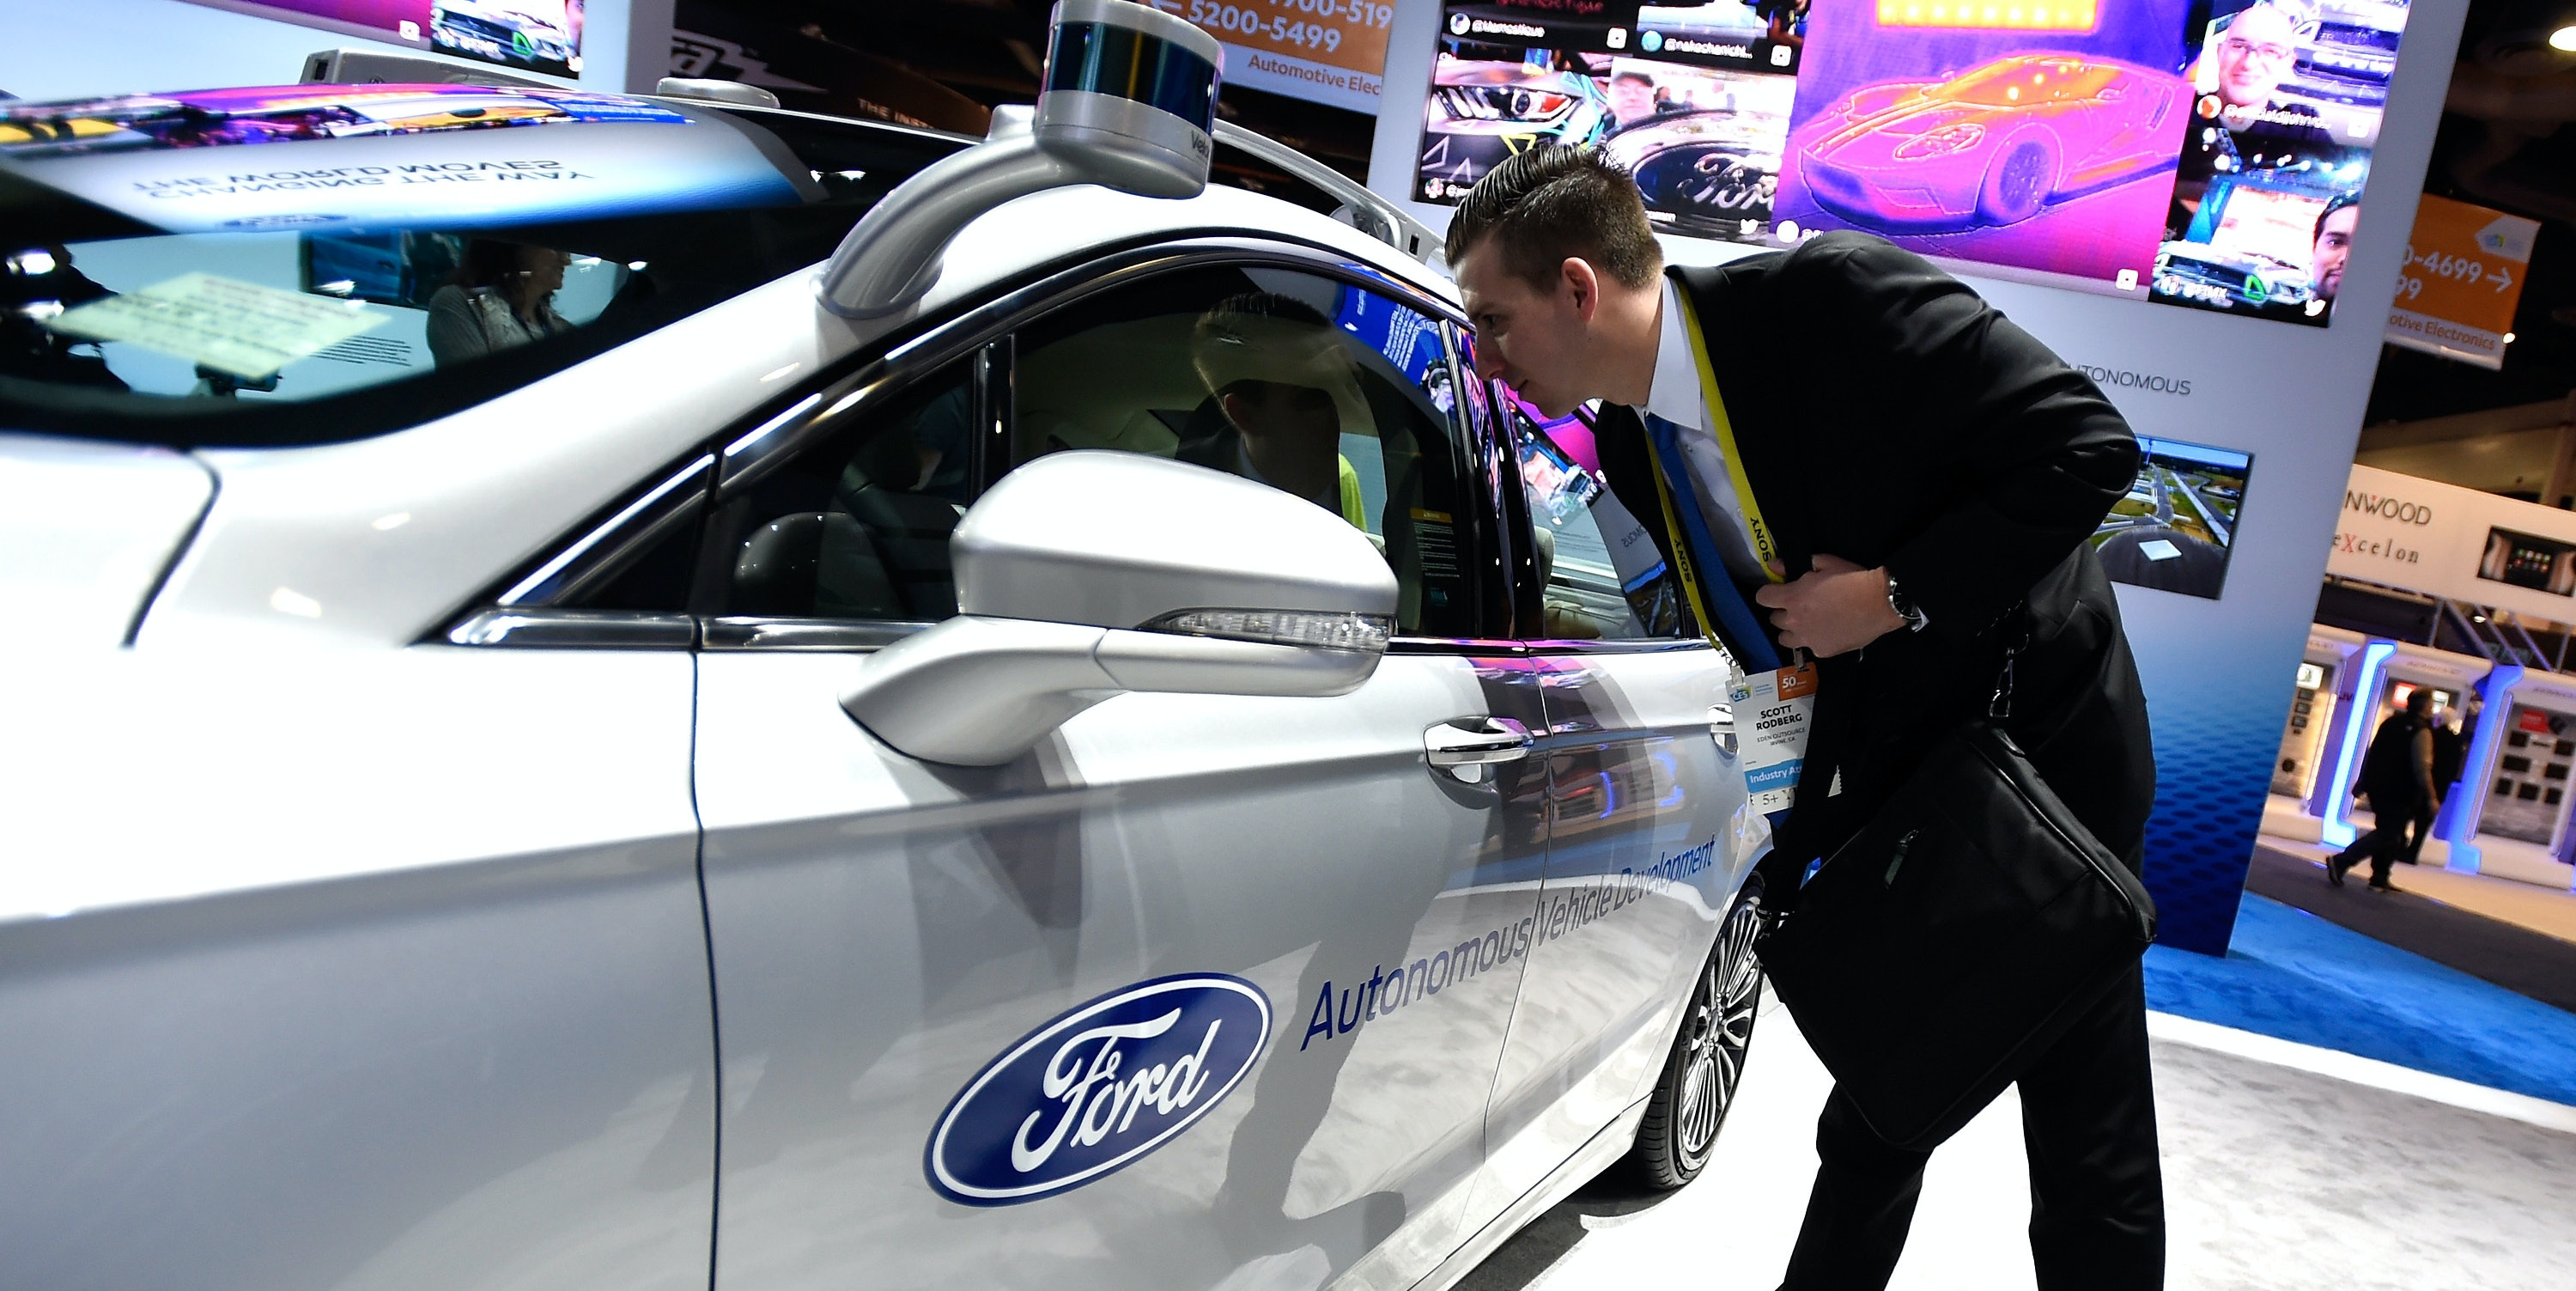 LAS VEGAS, NV - JANUARY 05:  An attendee looks at a Ford Fusion hybrid autonomous development vehicle at the Ford booth at CES 2017 at the Las Vegas Convention Center on January 5, 2017 in Las Vegas, Nevada. CES, the world's largest annual consumer technology trade show, runs through January 8 and features 3,800 exhibitors showing off their latest products and services to more than 165,000 attendees.  (Photo by David Becker/Getty Images)